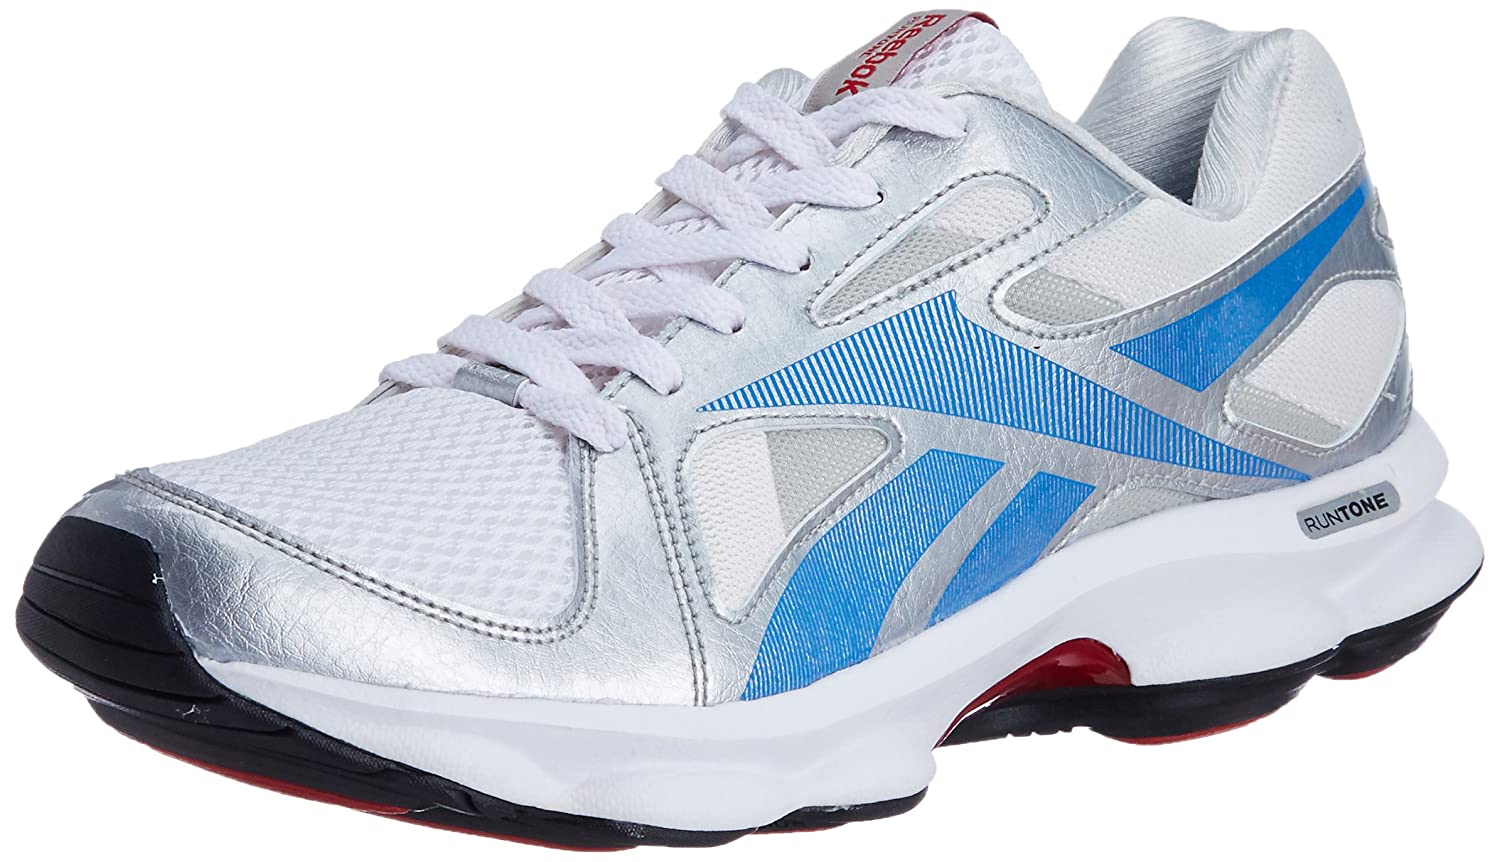 a3a41d283d8a2 Cheap reebok runtone reviews Buy Online  OFF31% Discounted